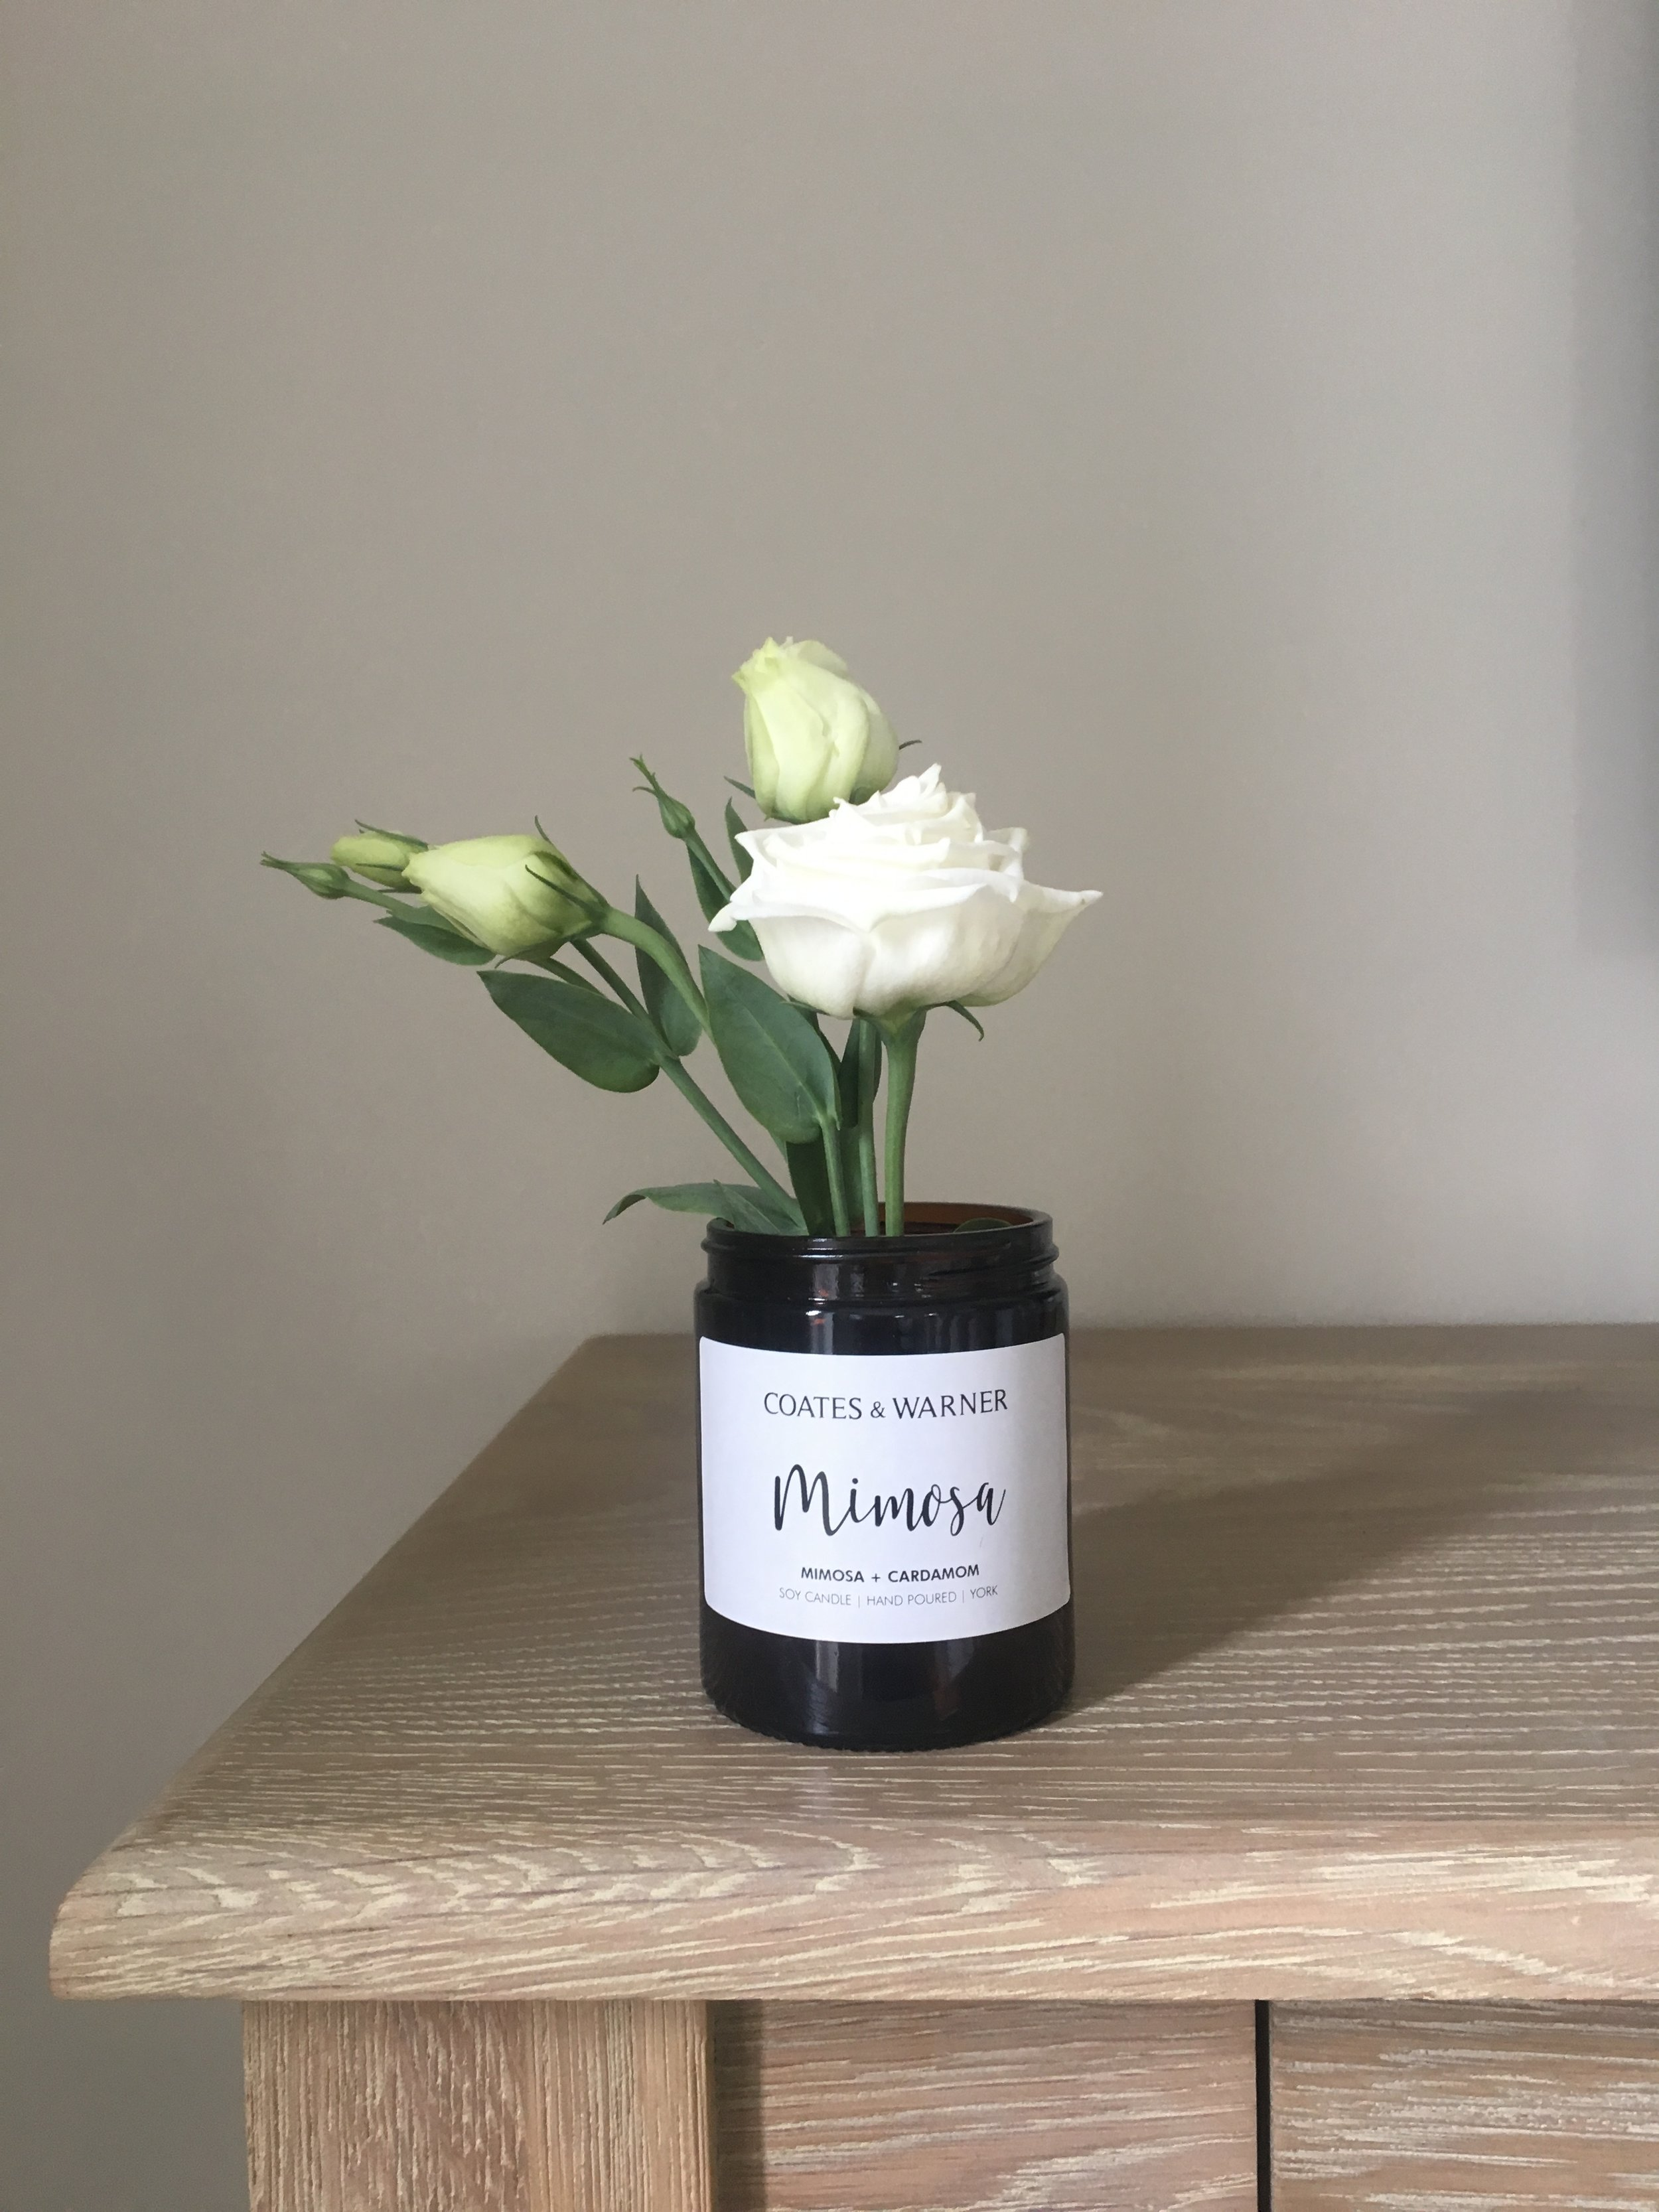 1. Flowers - One of the most simplest ways to reuse a C&W candle jar is to turn it into a vase! With clippings from your garden or small wild flowers on a country walk, it's a budget-friendly way to indulge in fresh flowers.